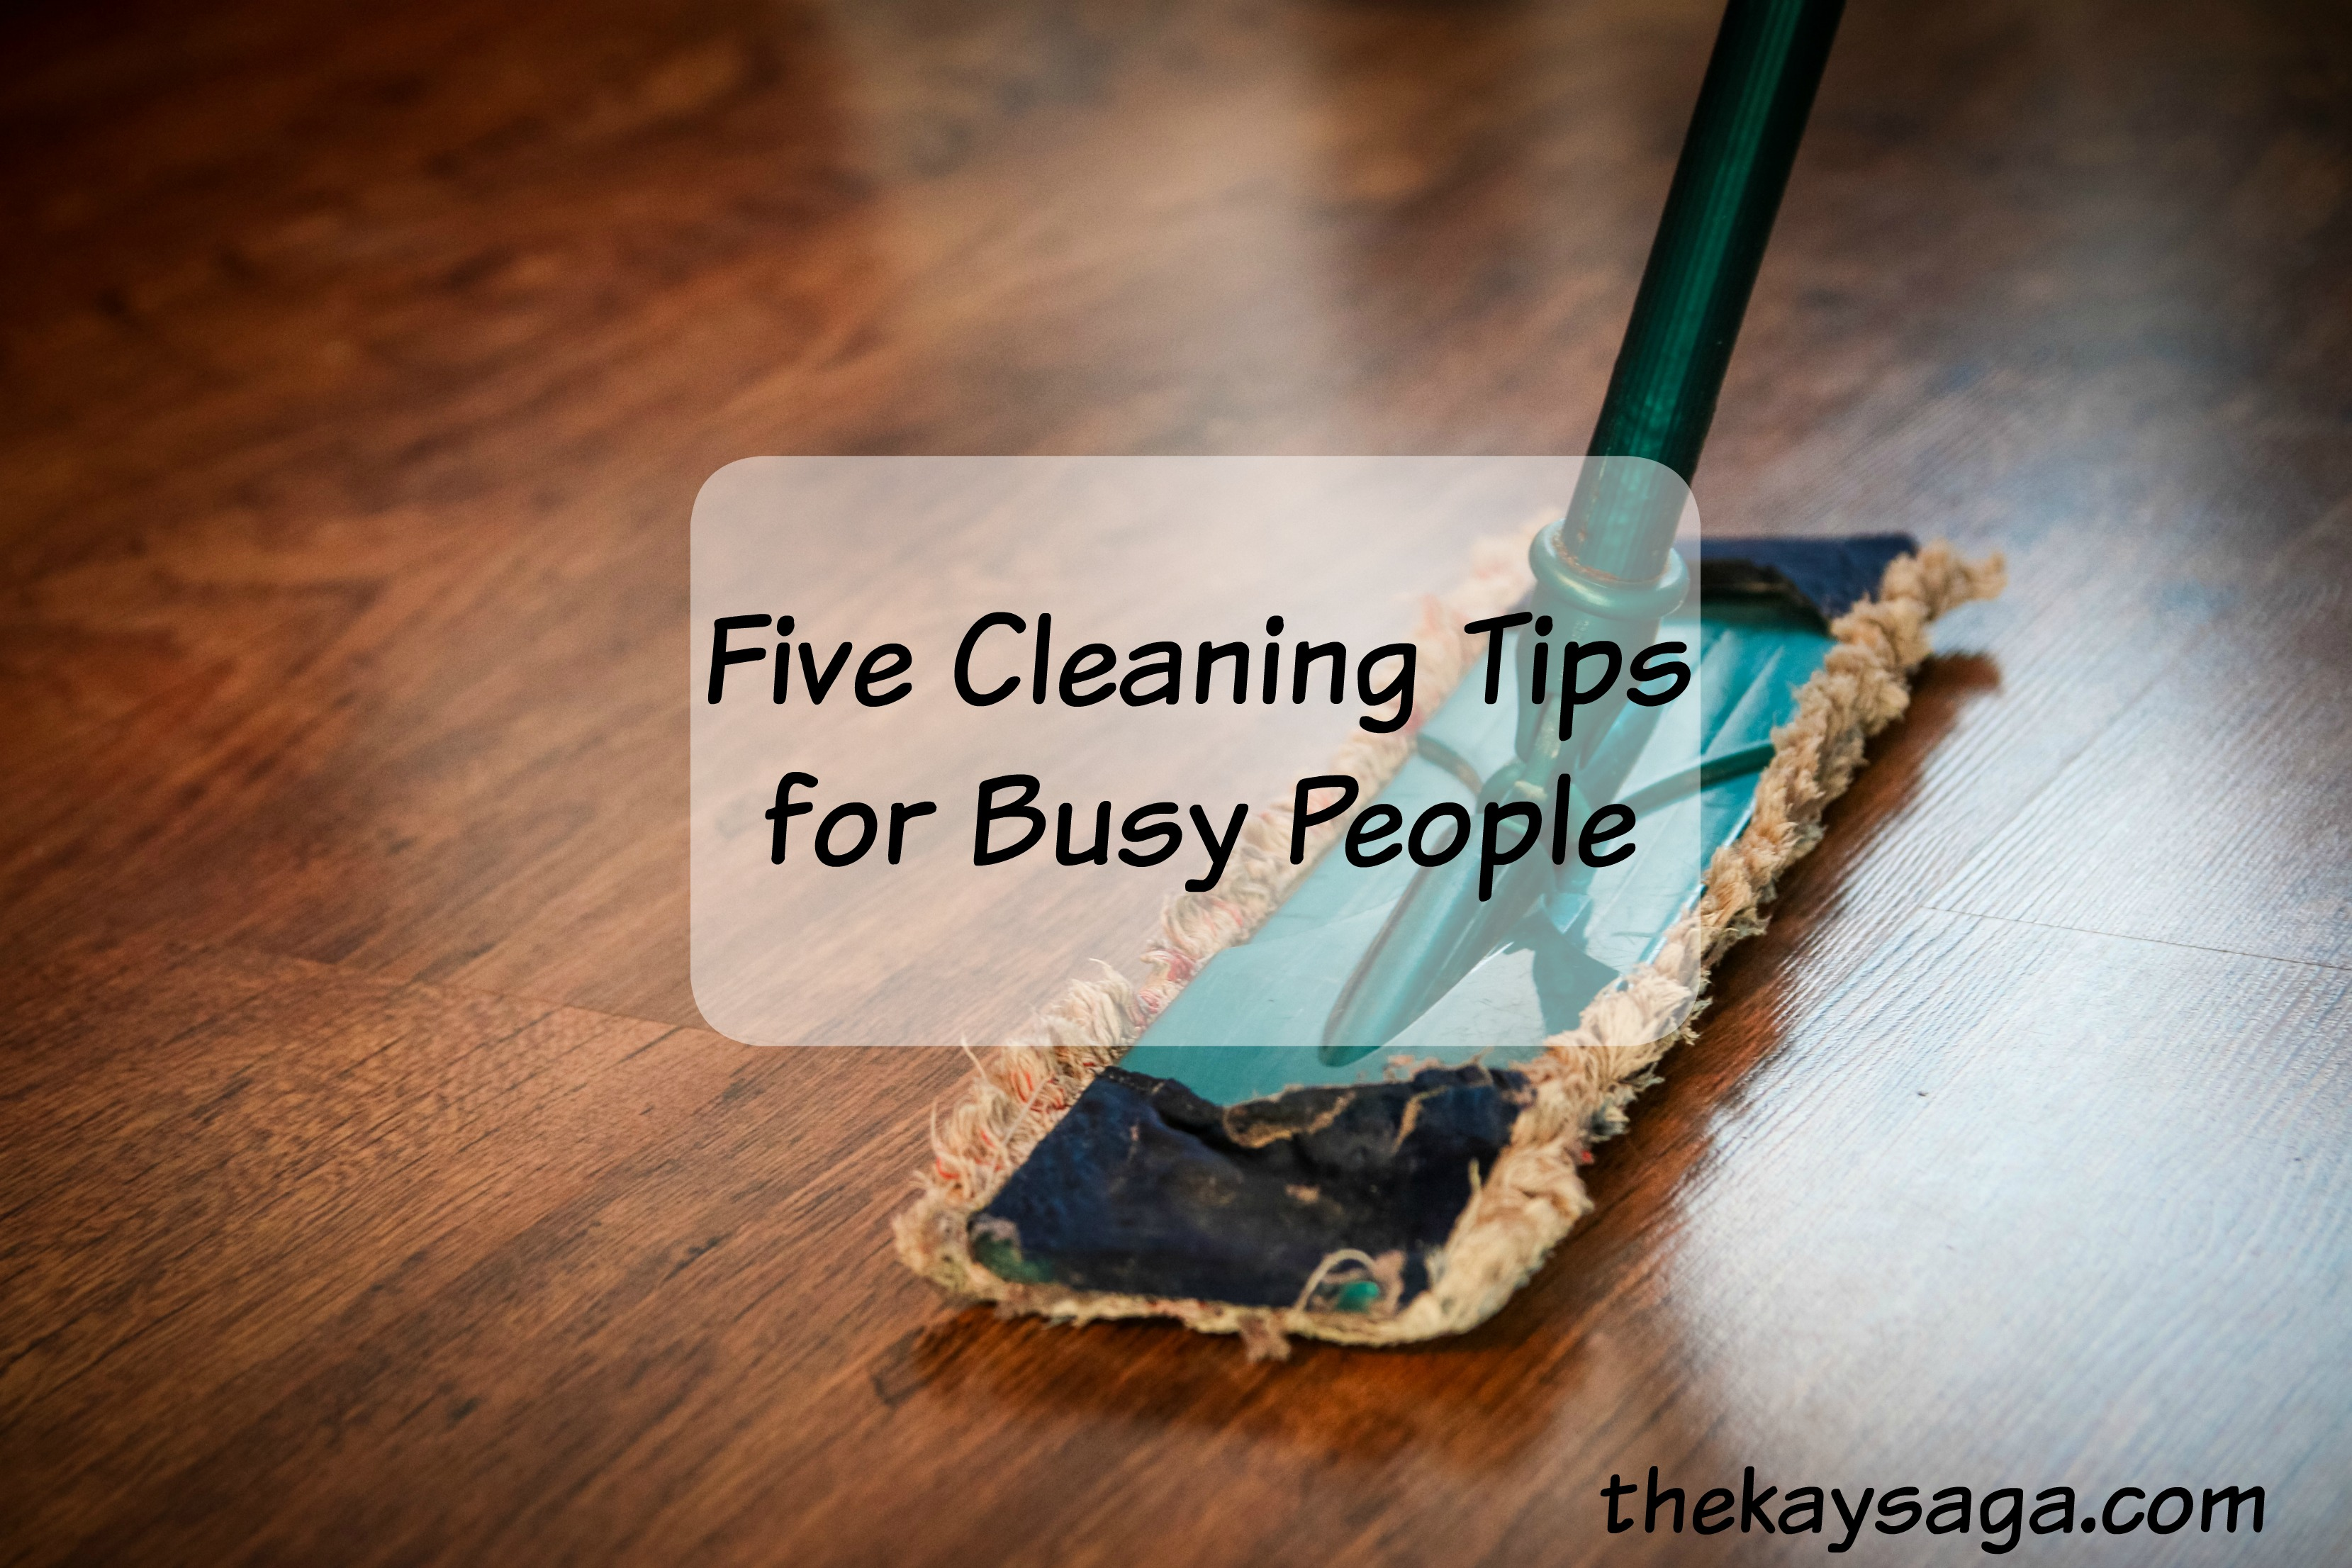 Five Cleaning Tips for Busy People